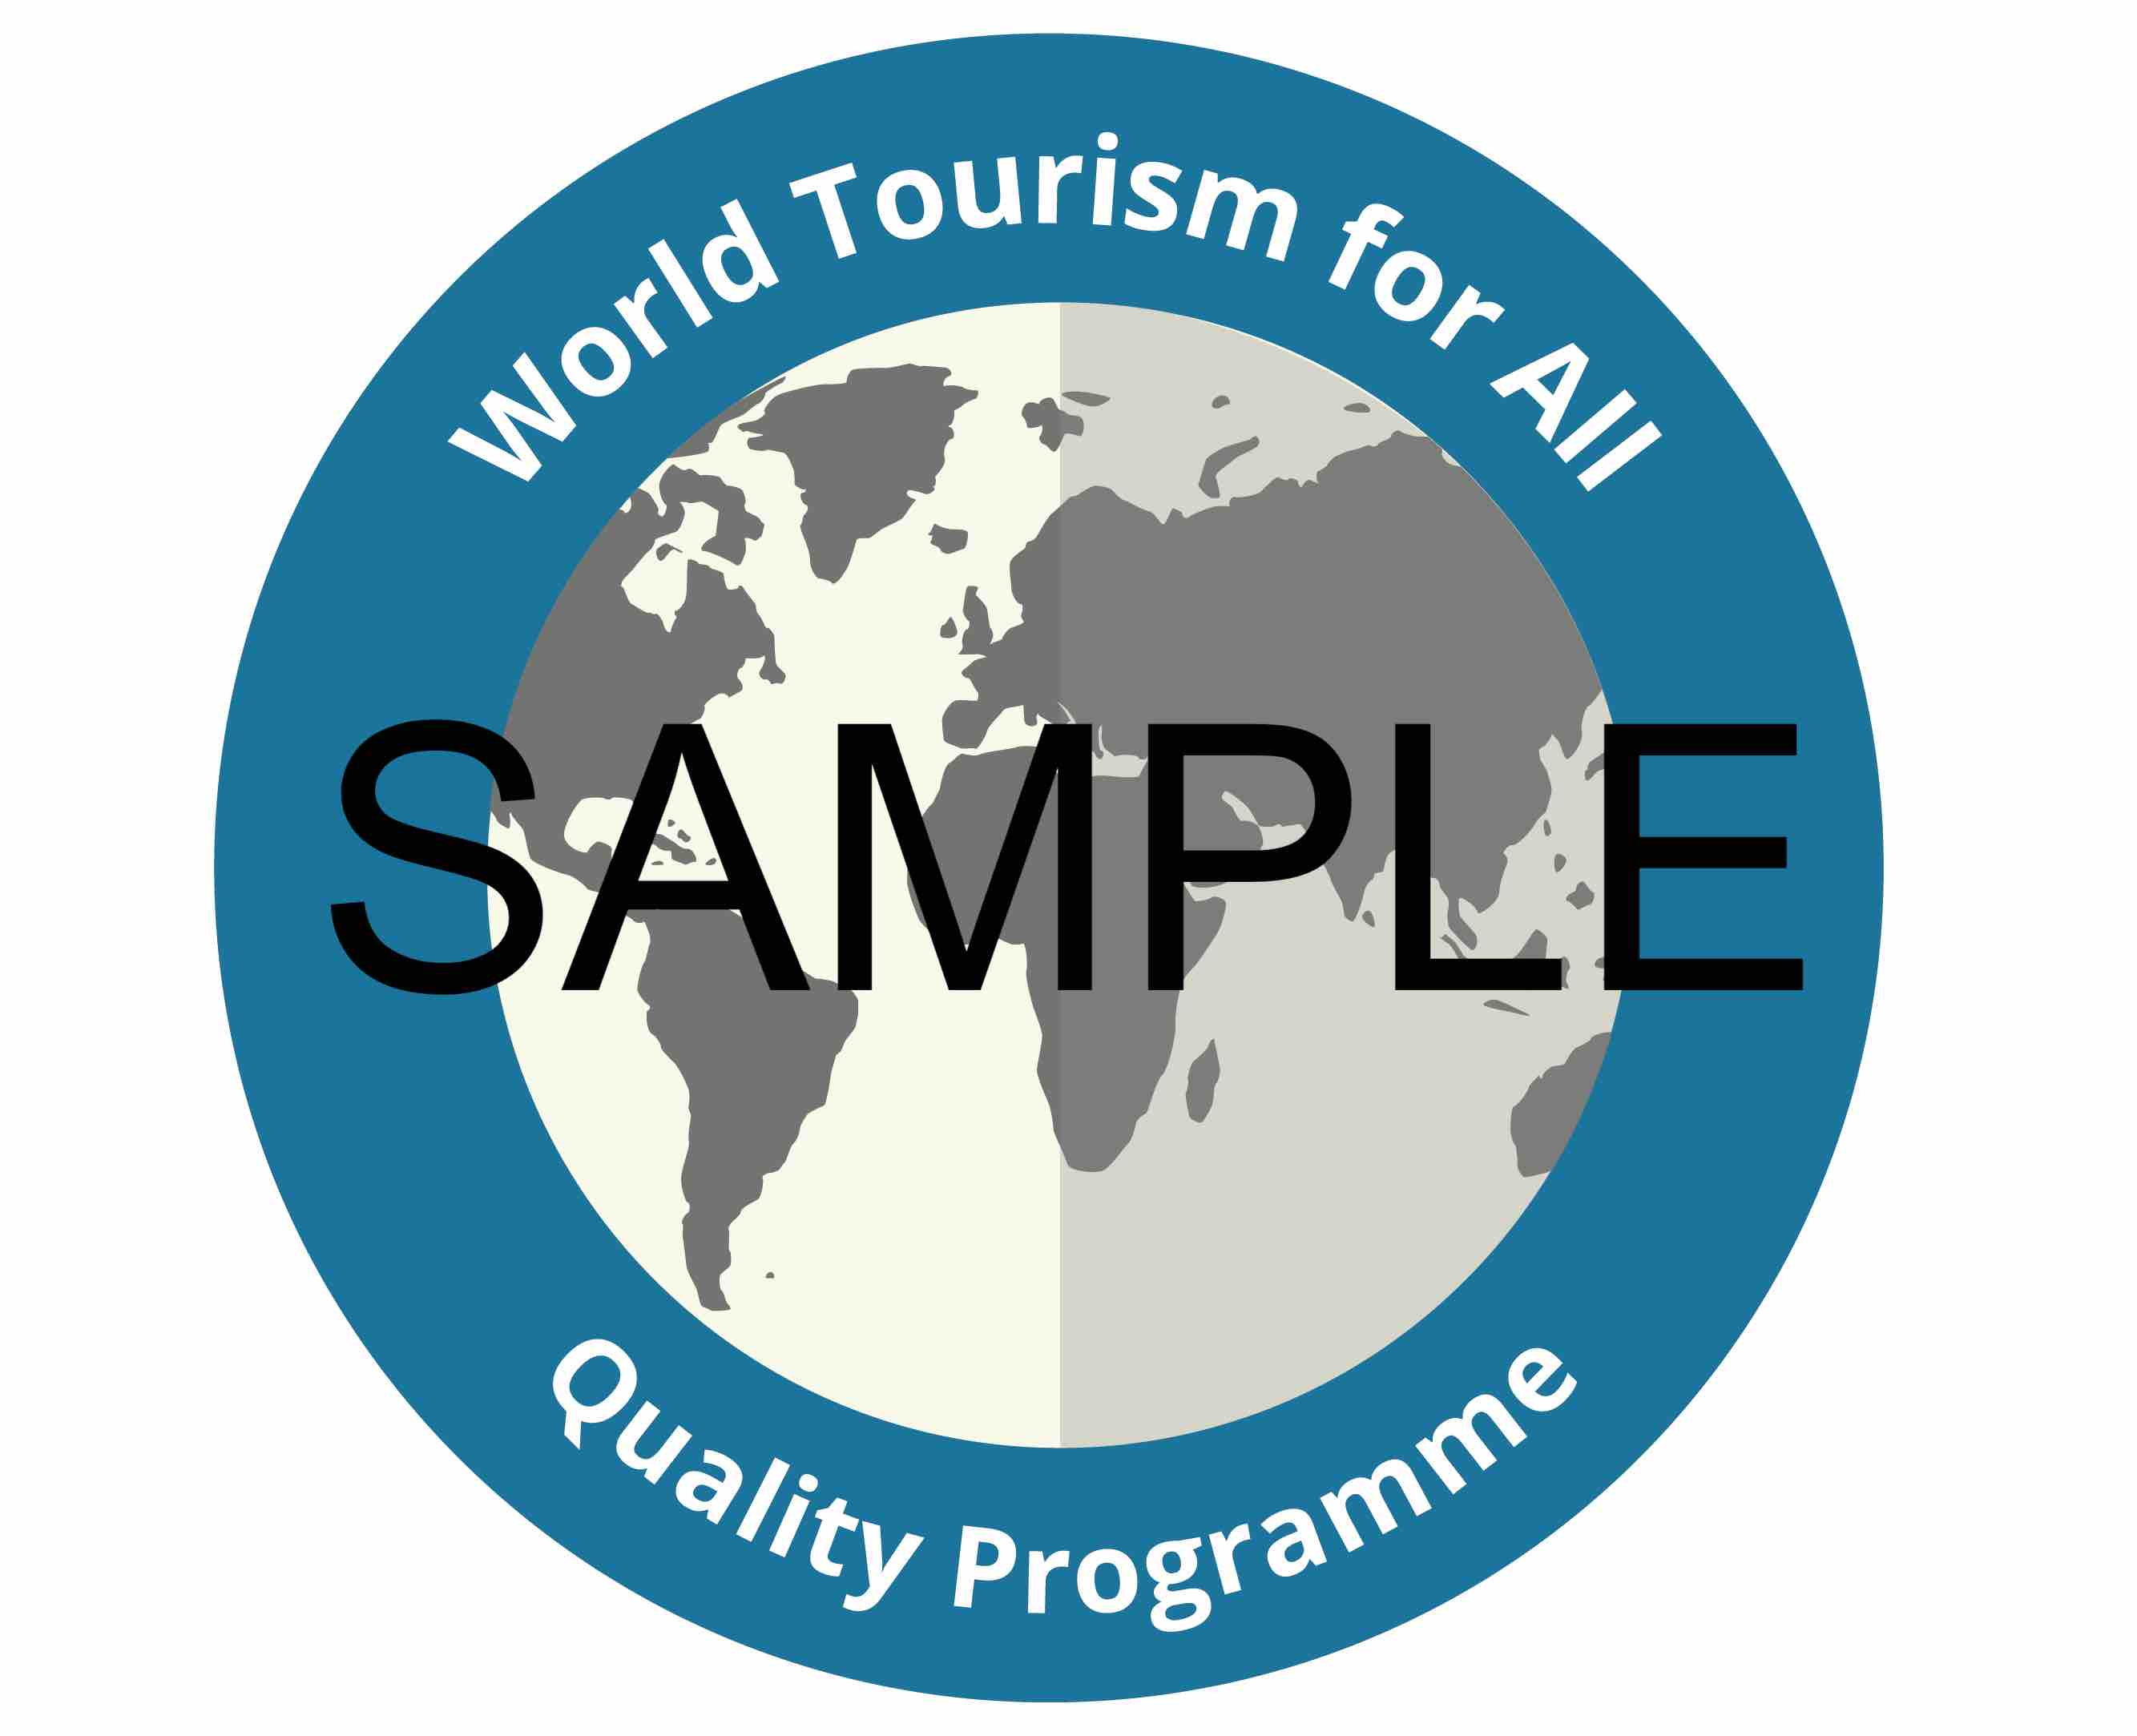 Seal of Accreditation, World Tourism for All Quality Programme